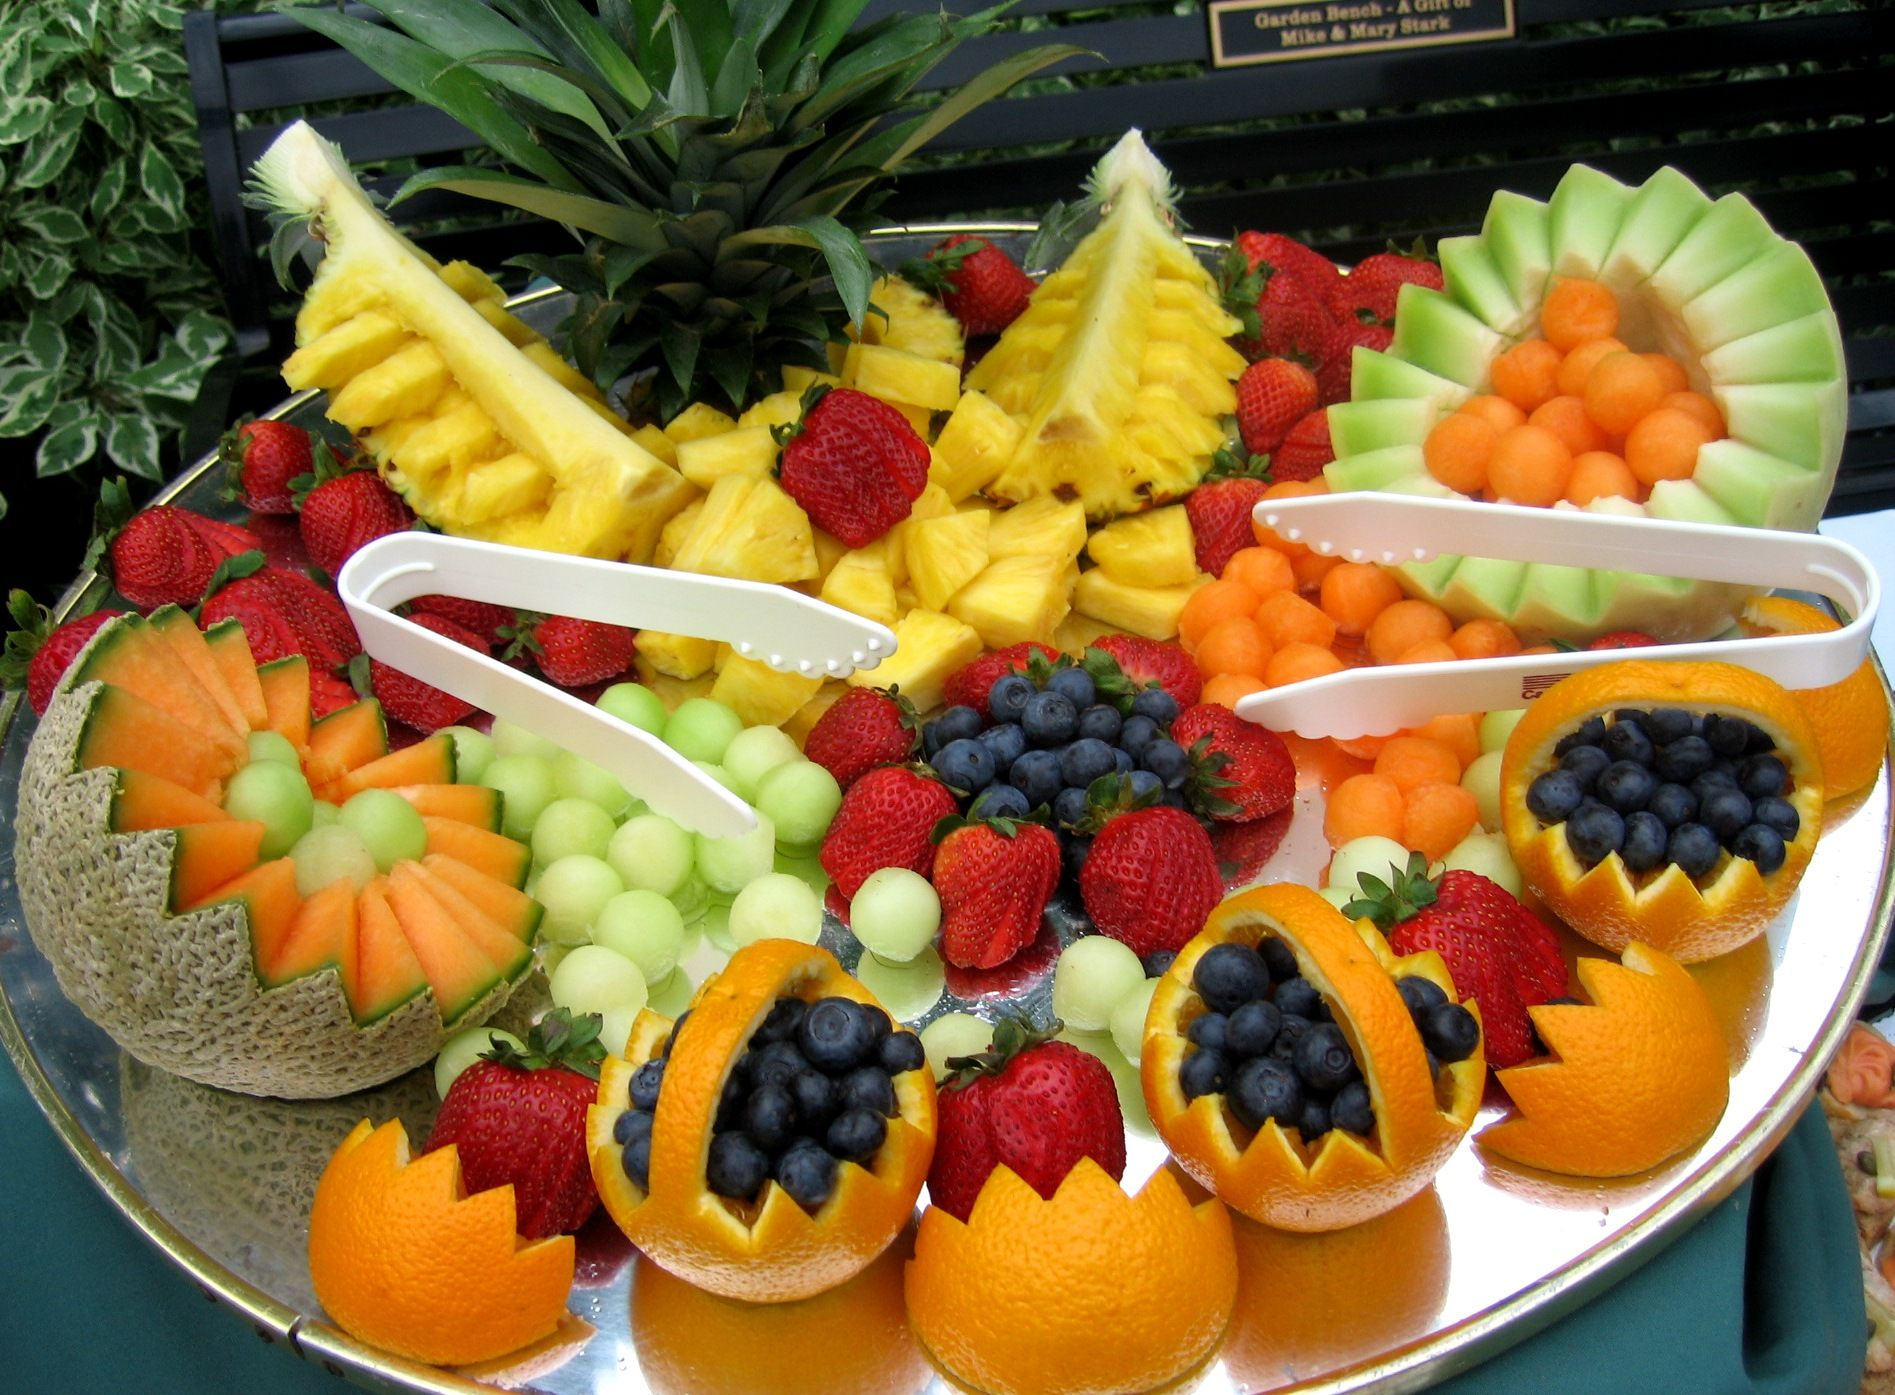 Pin By Aa Executive Catering At The E On Appetizers Food Carving